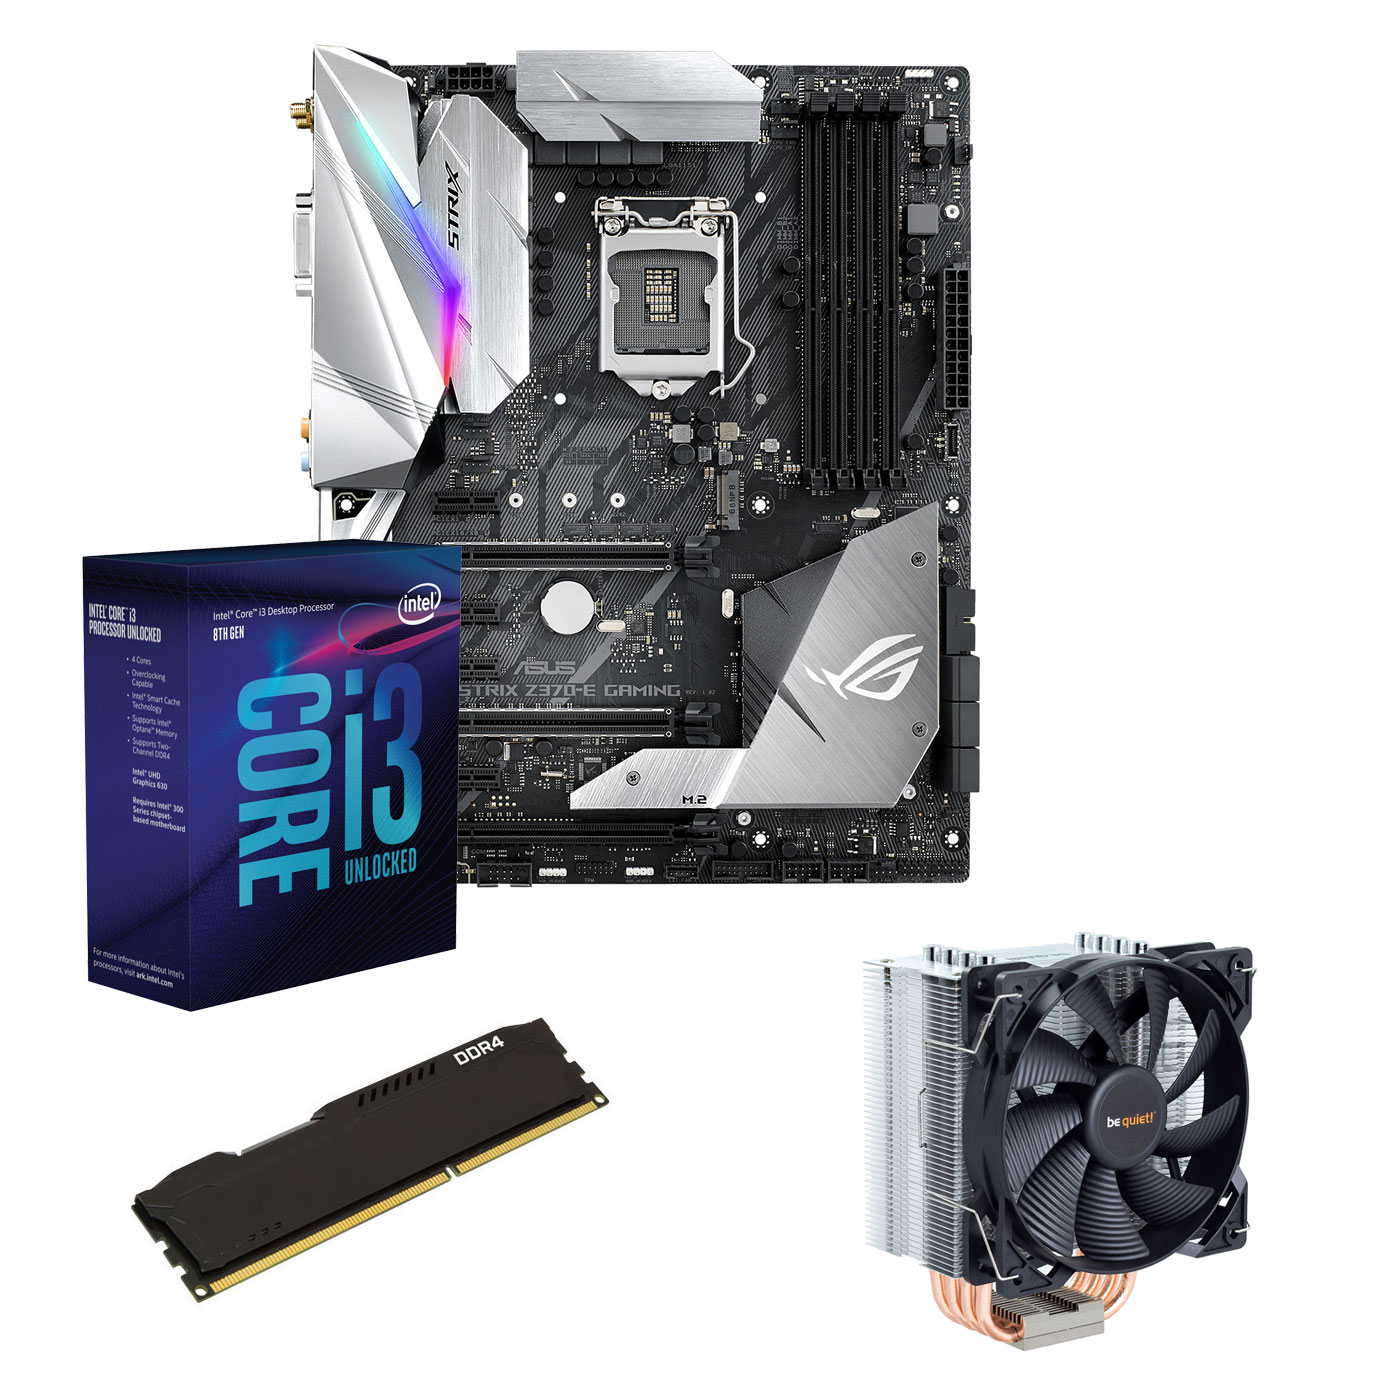 Kit upgrade PC Kit Upgrade PC Core i3K ASUS ROG STRIX Z370E GAMING 4 Go Carte mère Socket 1151 Intel Z370 Express + CPU Intel Core i3-8350K (4.0 GHz) + RAM 4 Go DDR4